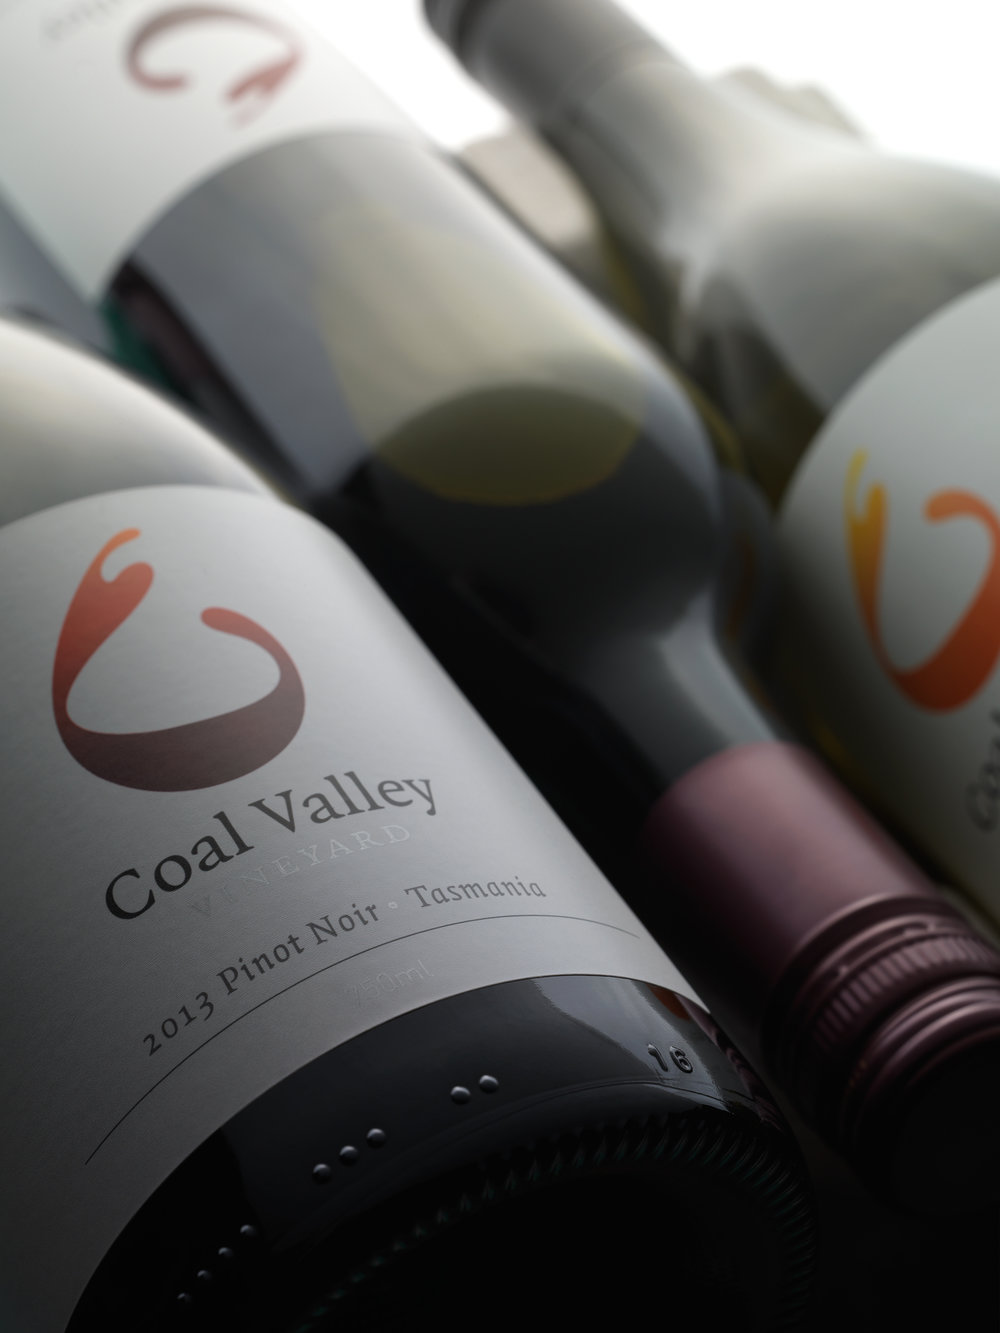 Branding image for Coal Valley Vineyard